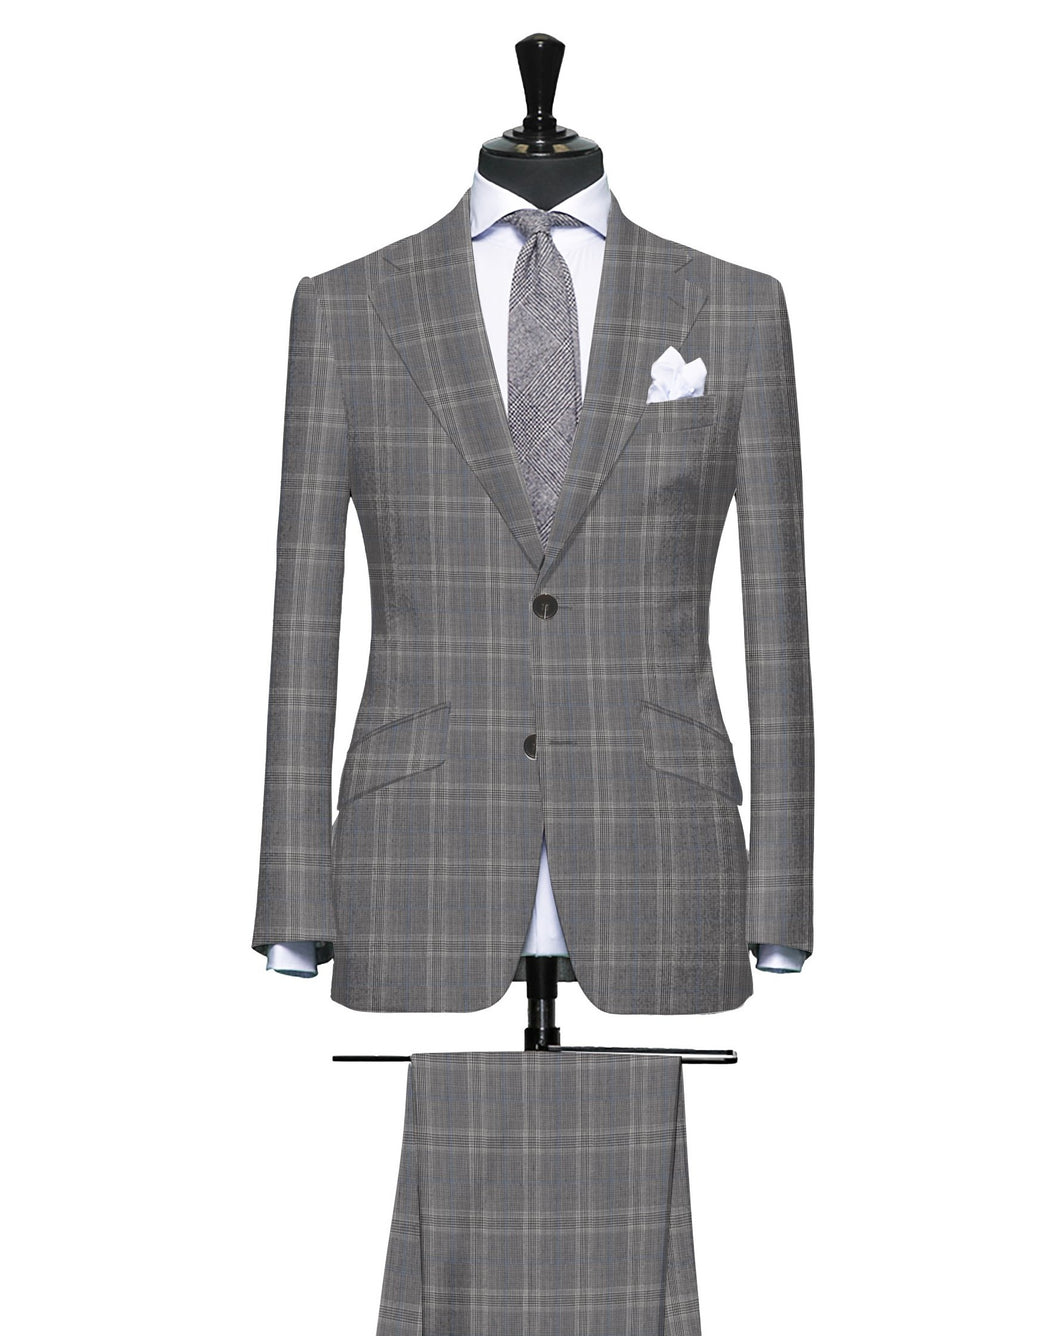 Grey and Charcoal with Light Blue Glen Plaid, Super 150, Wool